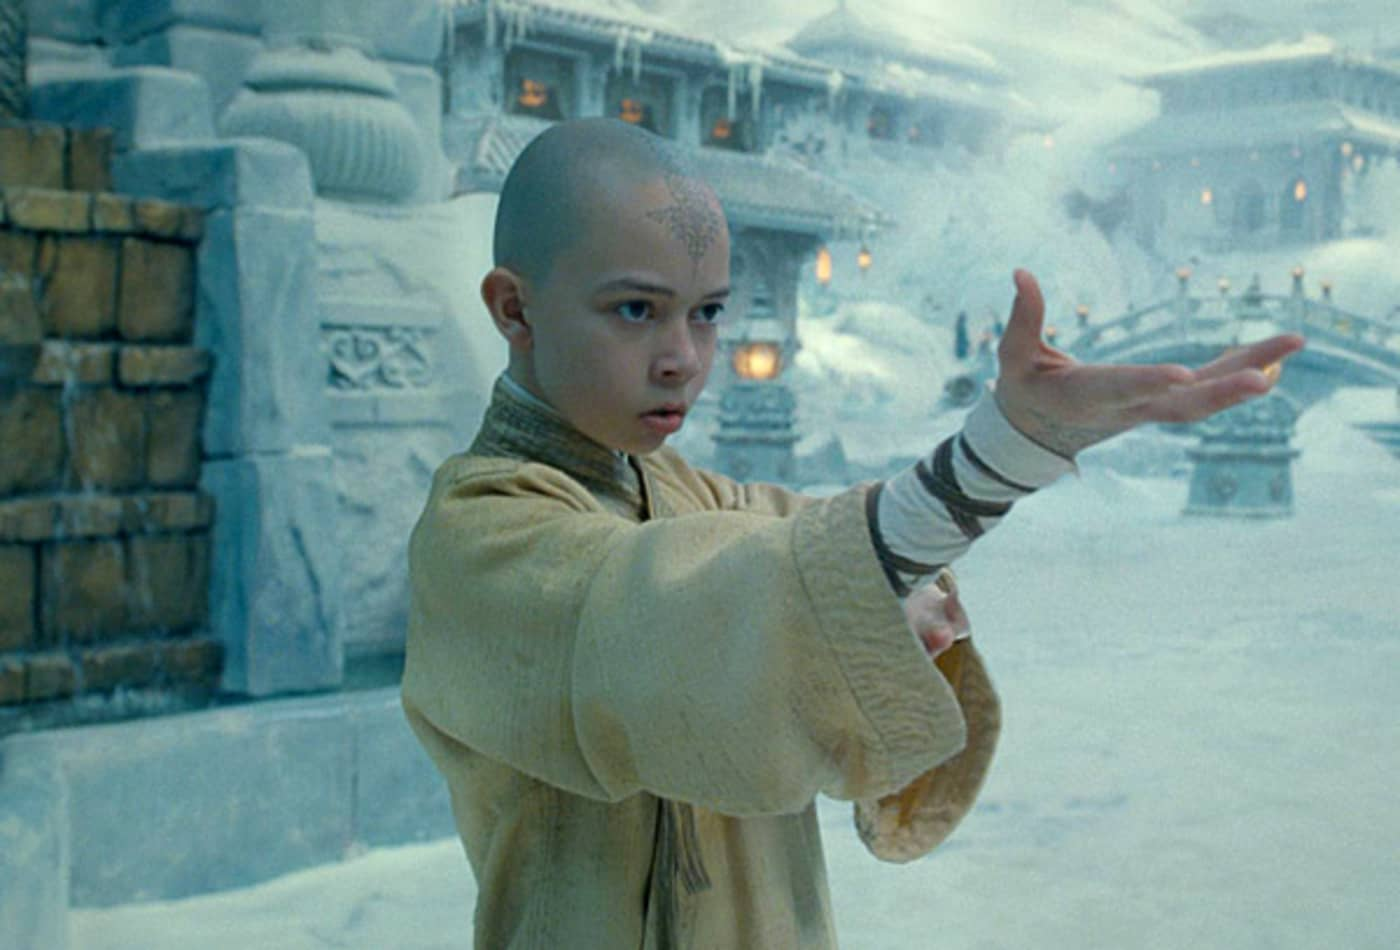 The-Last-Airbender-Highest-Grossing-Fantasy-Movies-CNBC.jpg